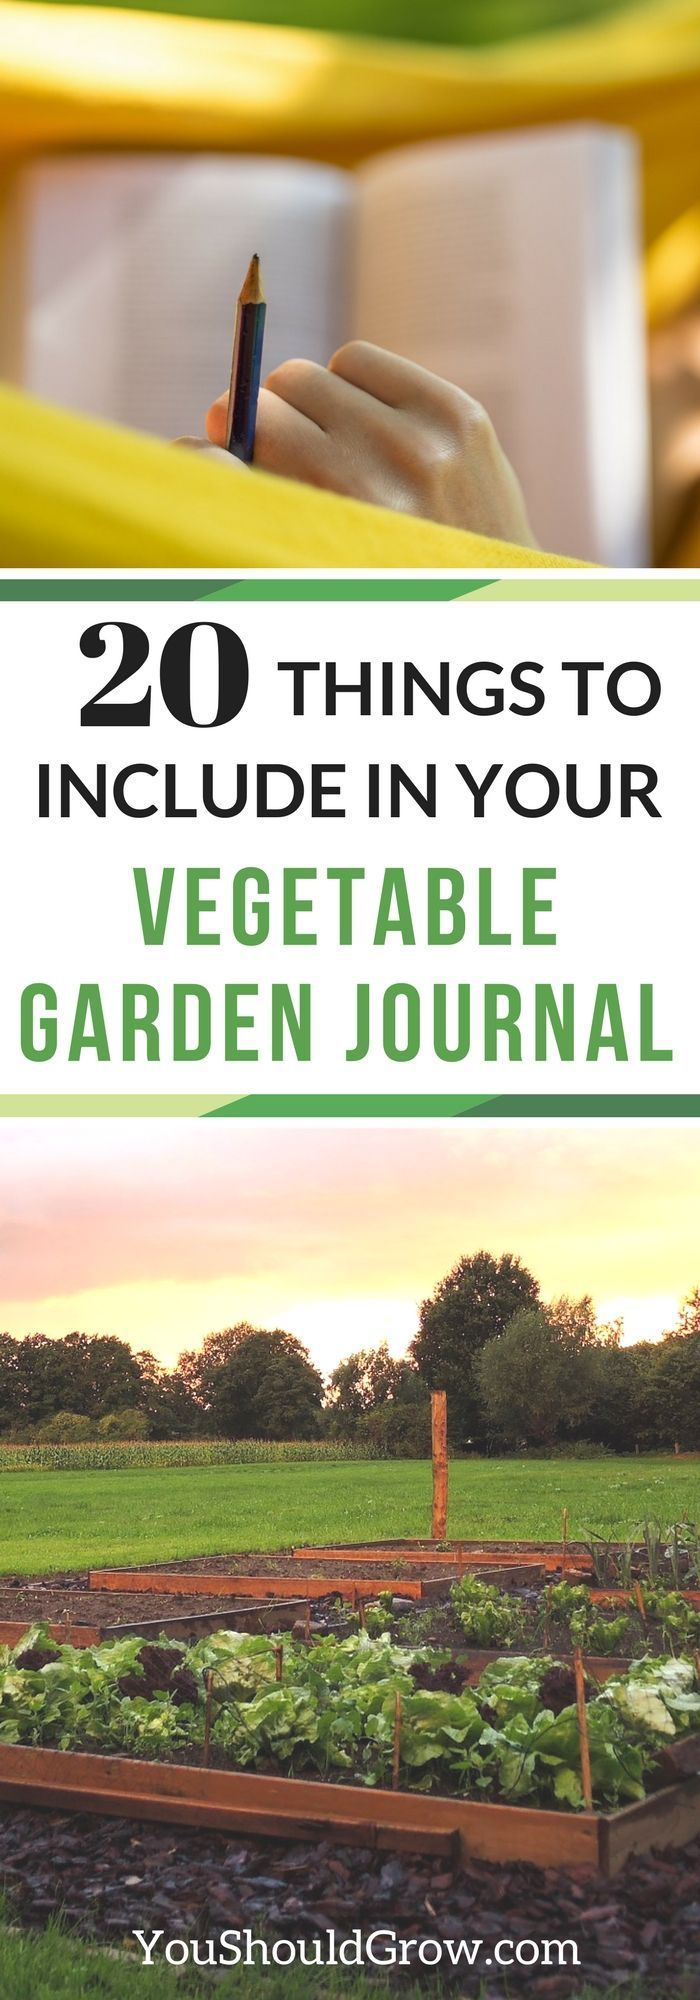 Square foot garden map free printable for garden journal - 20 Things To Include In Your Vegetable Garden Journal